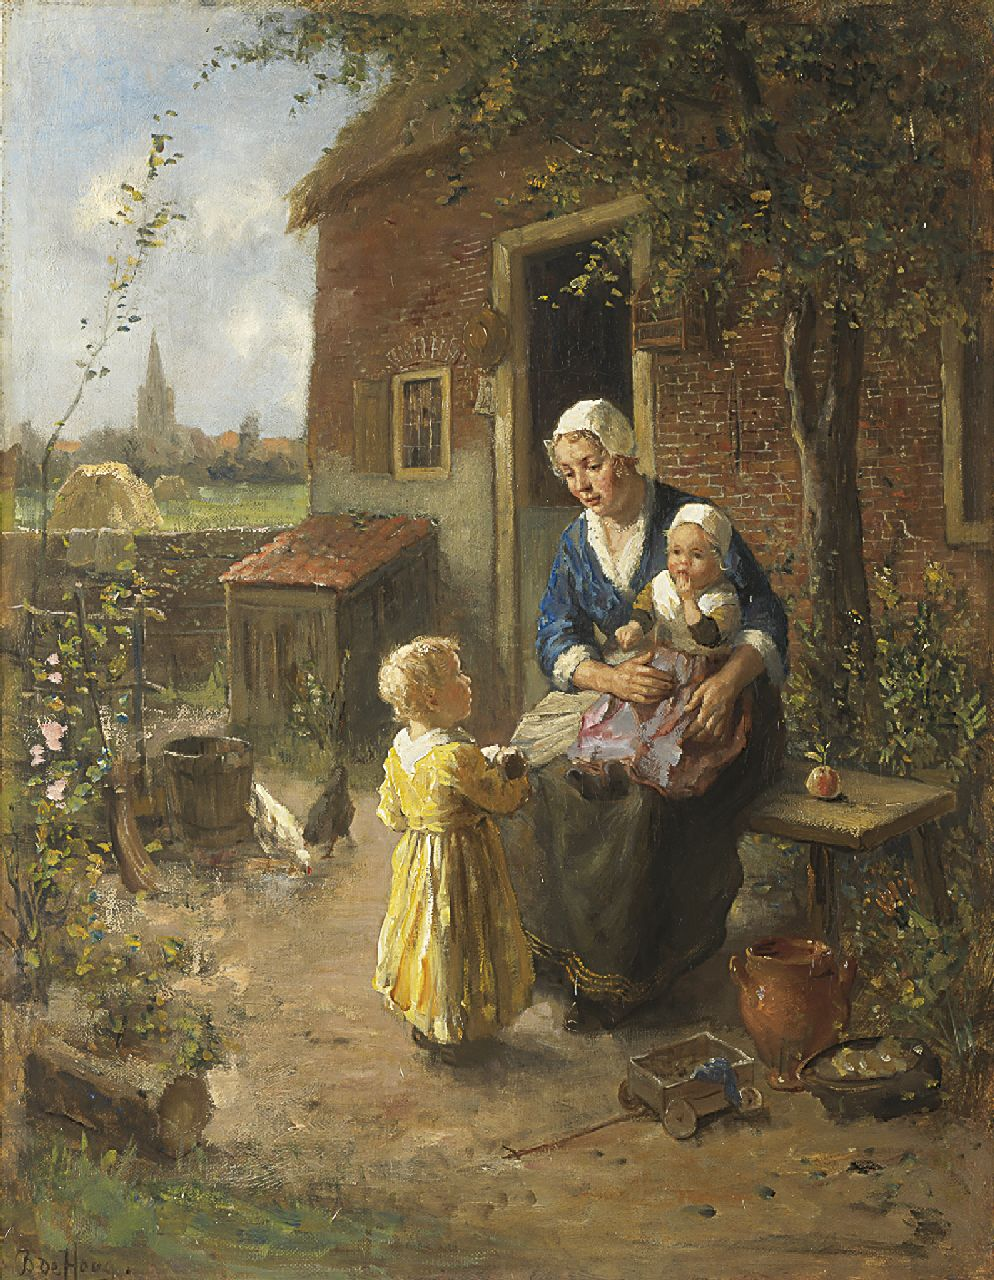 Hoog J.B. de | Johan 'Bernard' de Hoog, Motherly love, oil on canvas 65.2 x 50.2 cm, signed l.l.